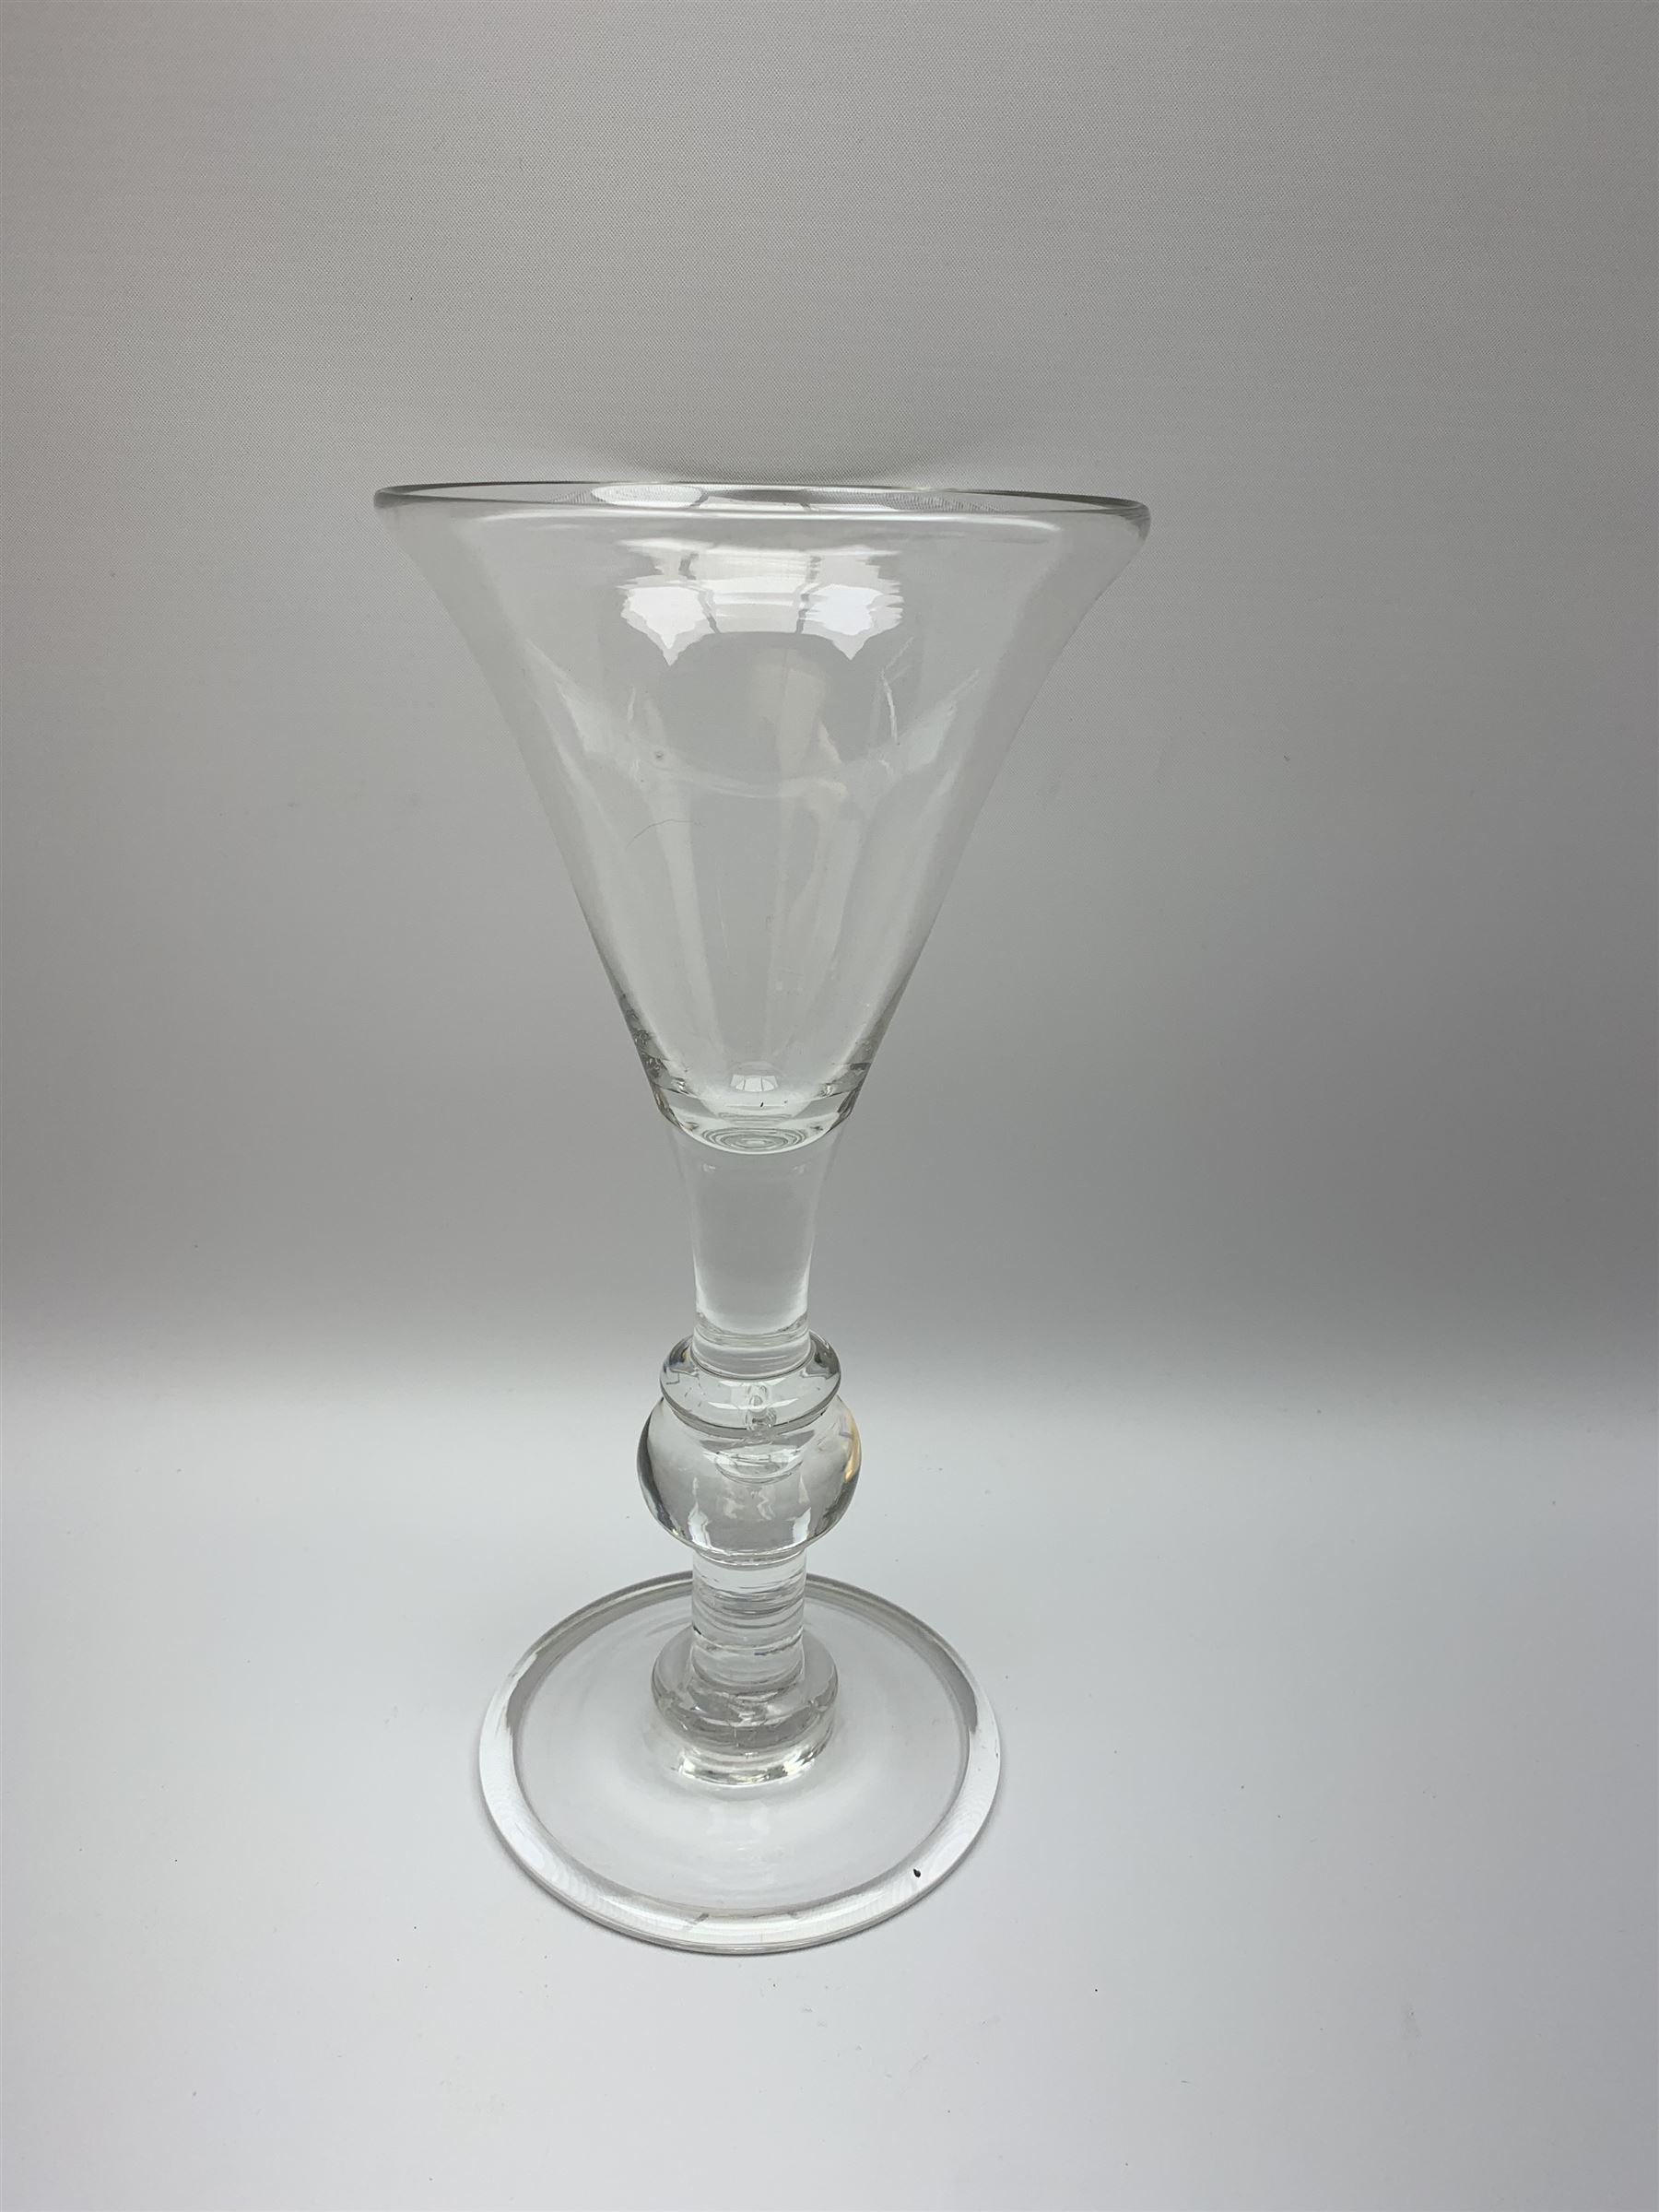 Large 18th century style drinking glass - Image 3 of 4